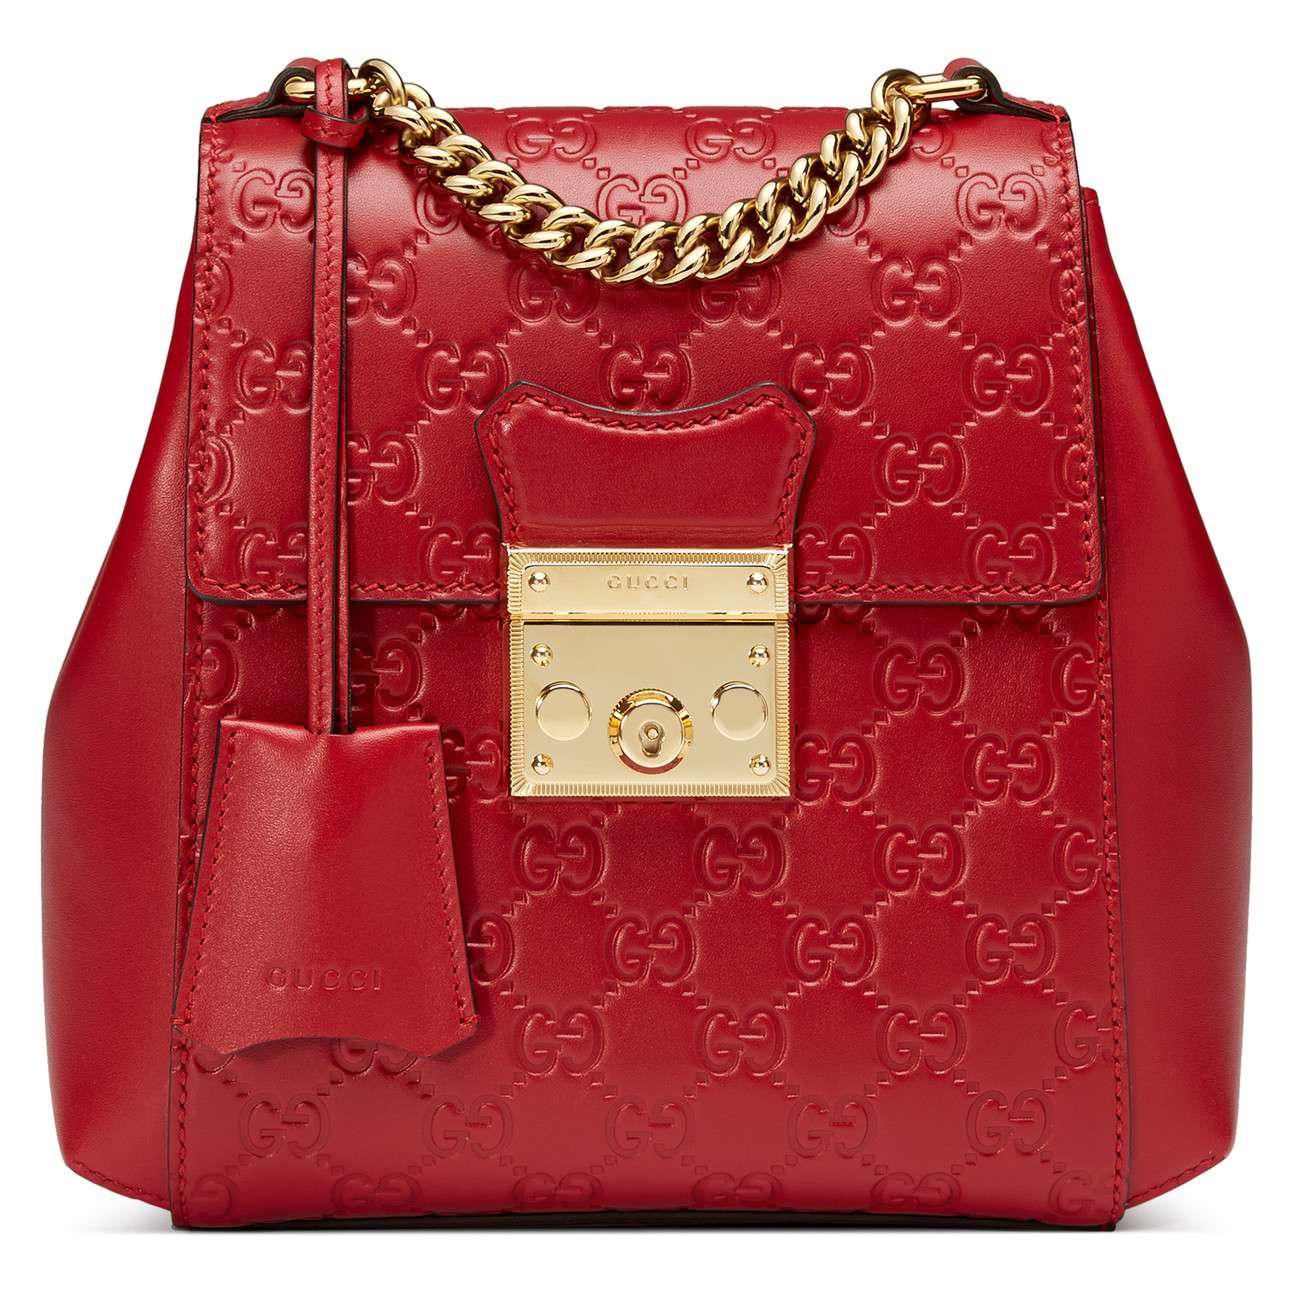 e9783d5bef8 Lyst - Gucci Gg Supreme Leather Padlock Backpack in Red